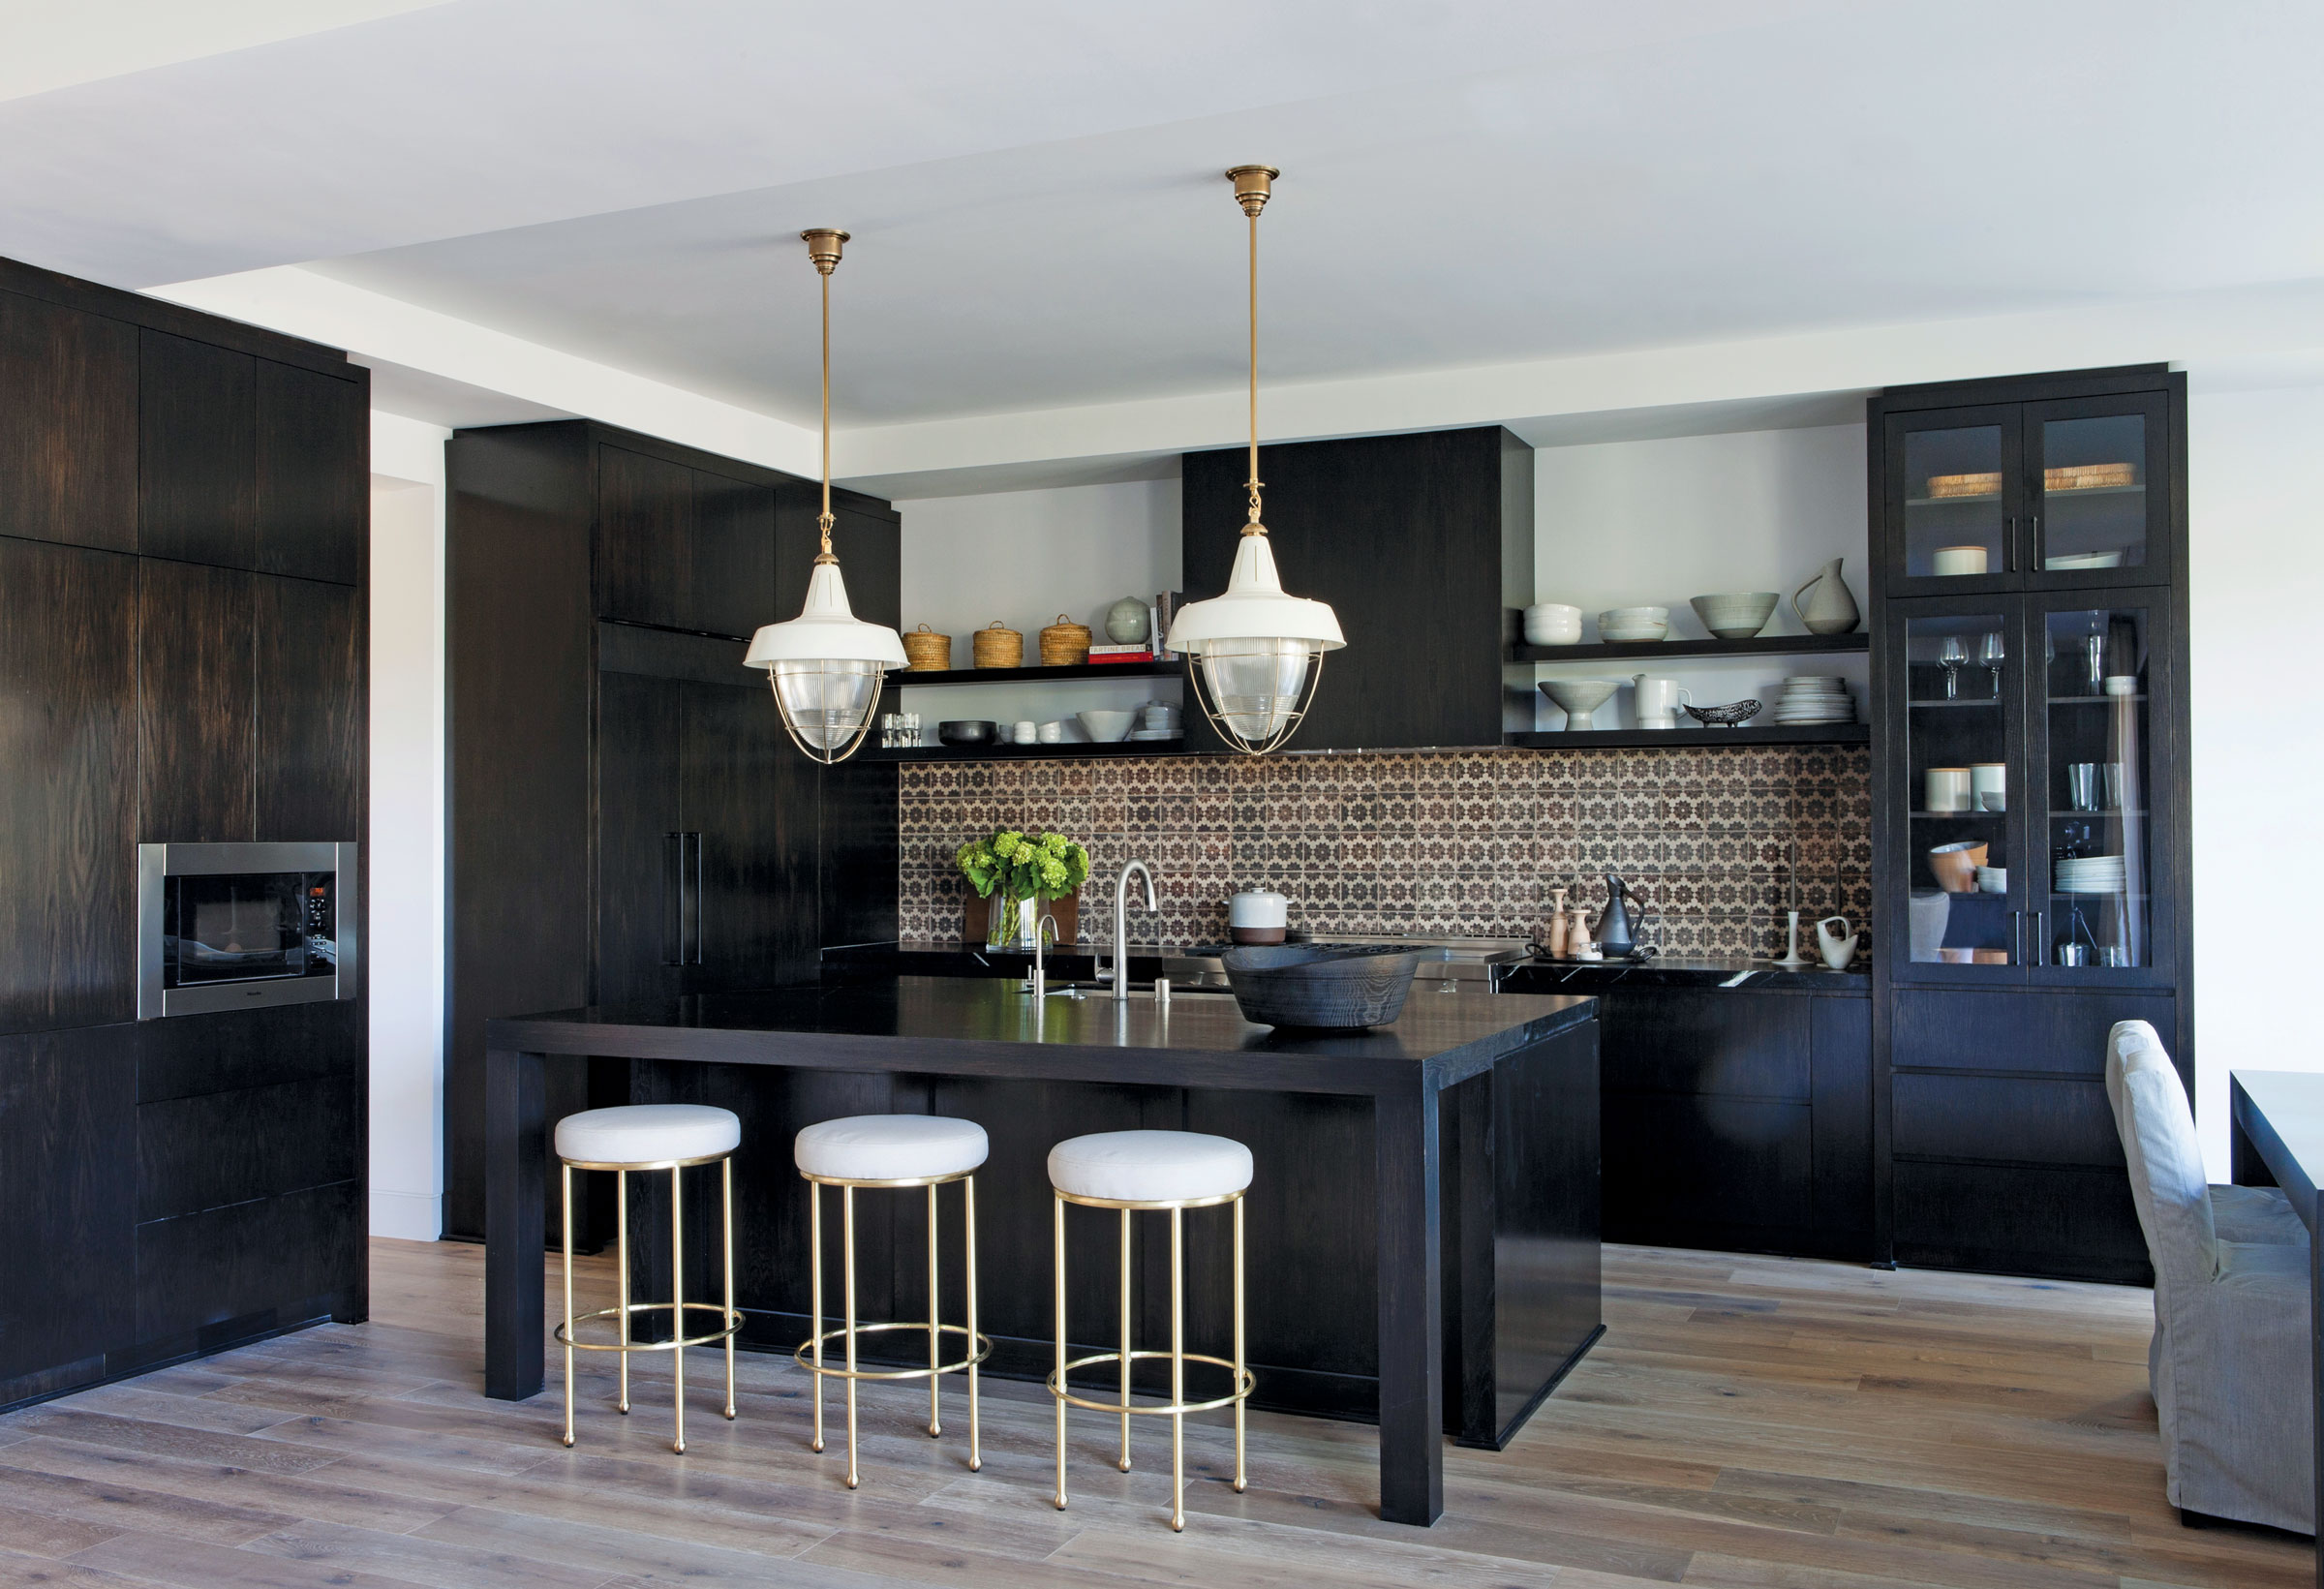 Black kitchen island with brown tile backsplash and overhead lights